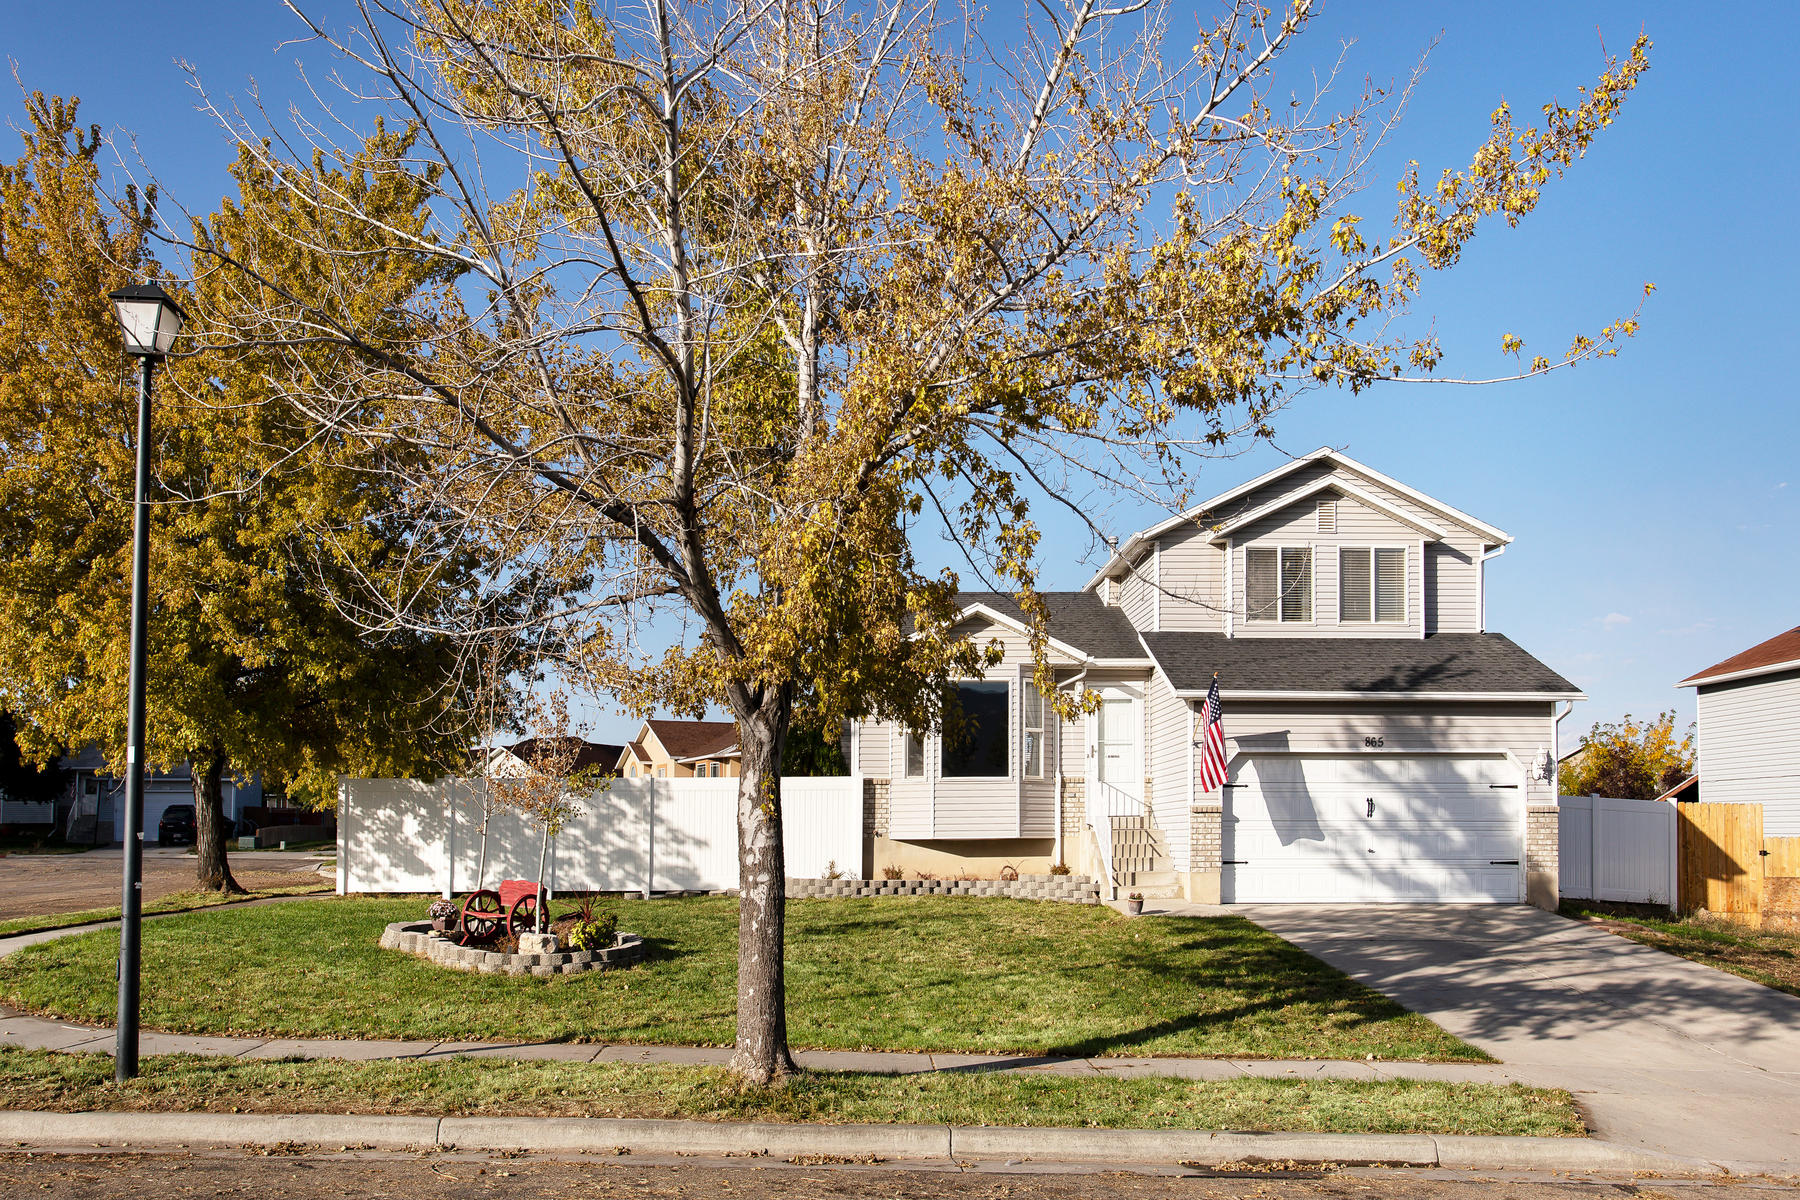 Single Family Homes for Sale at Fantastic Remodeled 4 Bedroom Home 865 N Whitaker Drive, Tooele, Utah 84074 United States